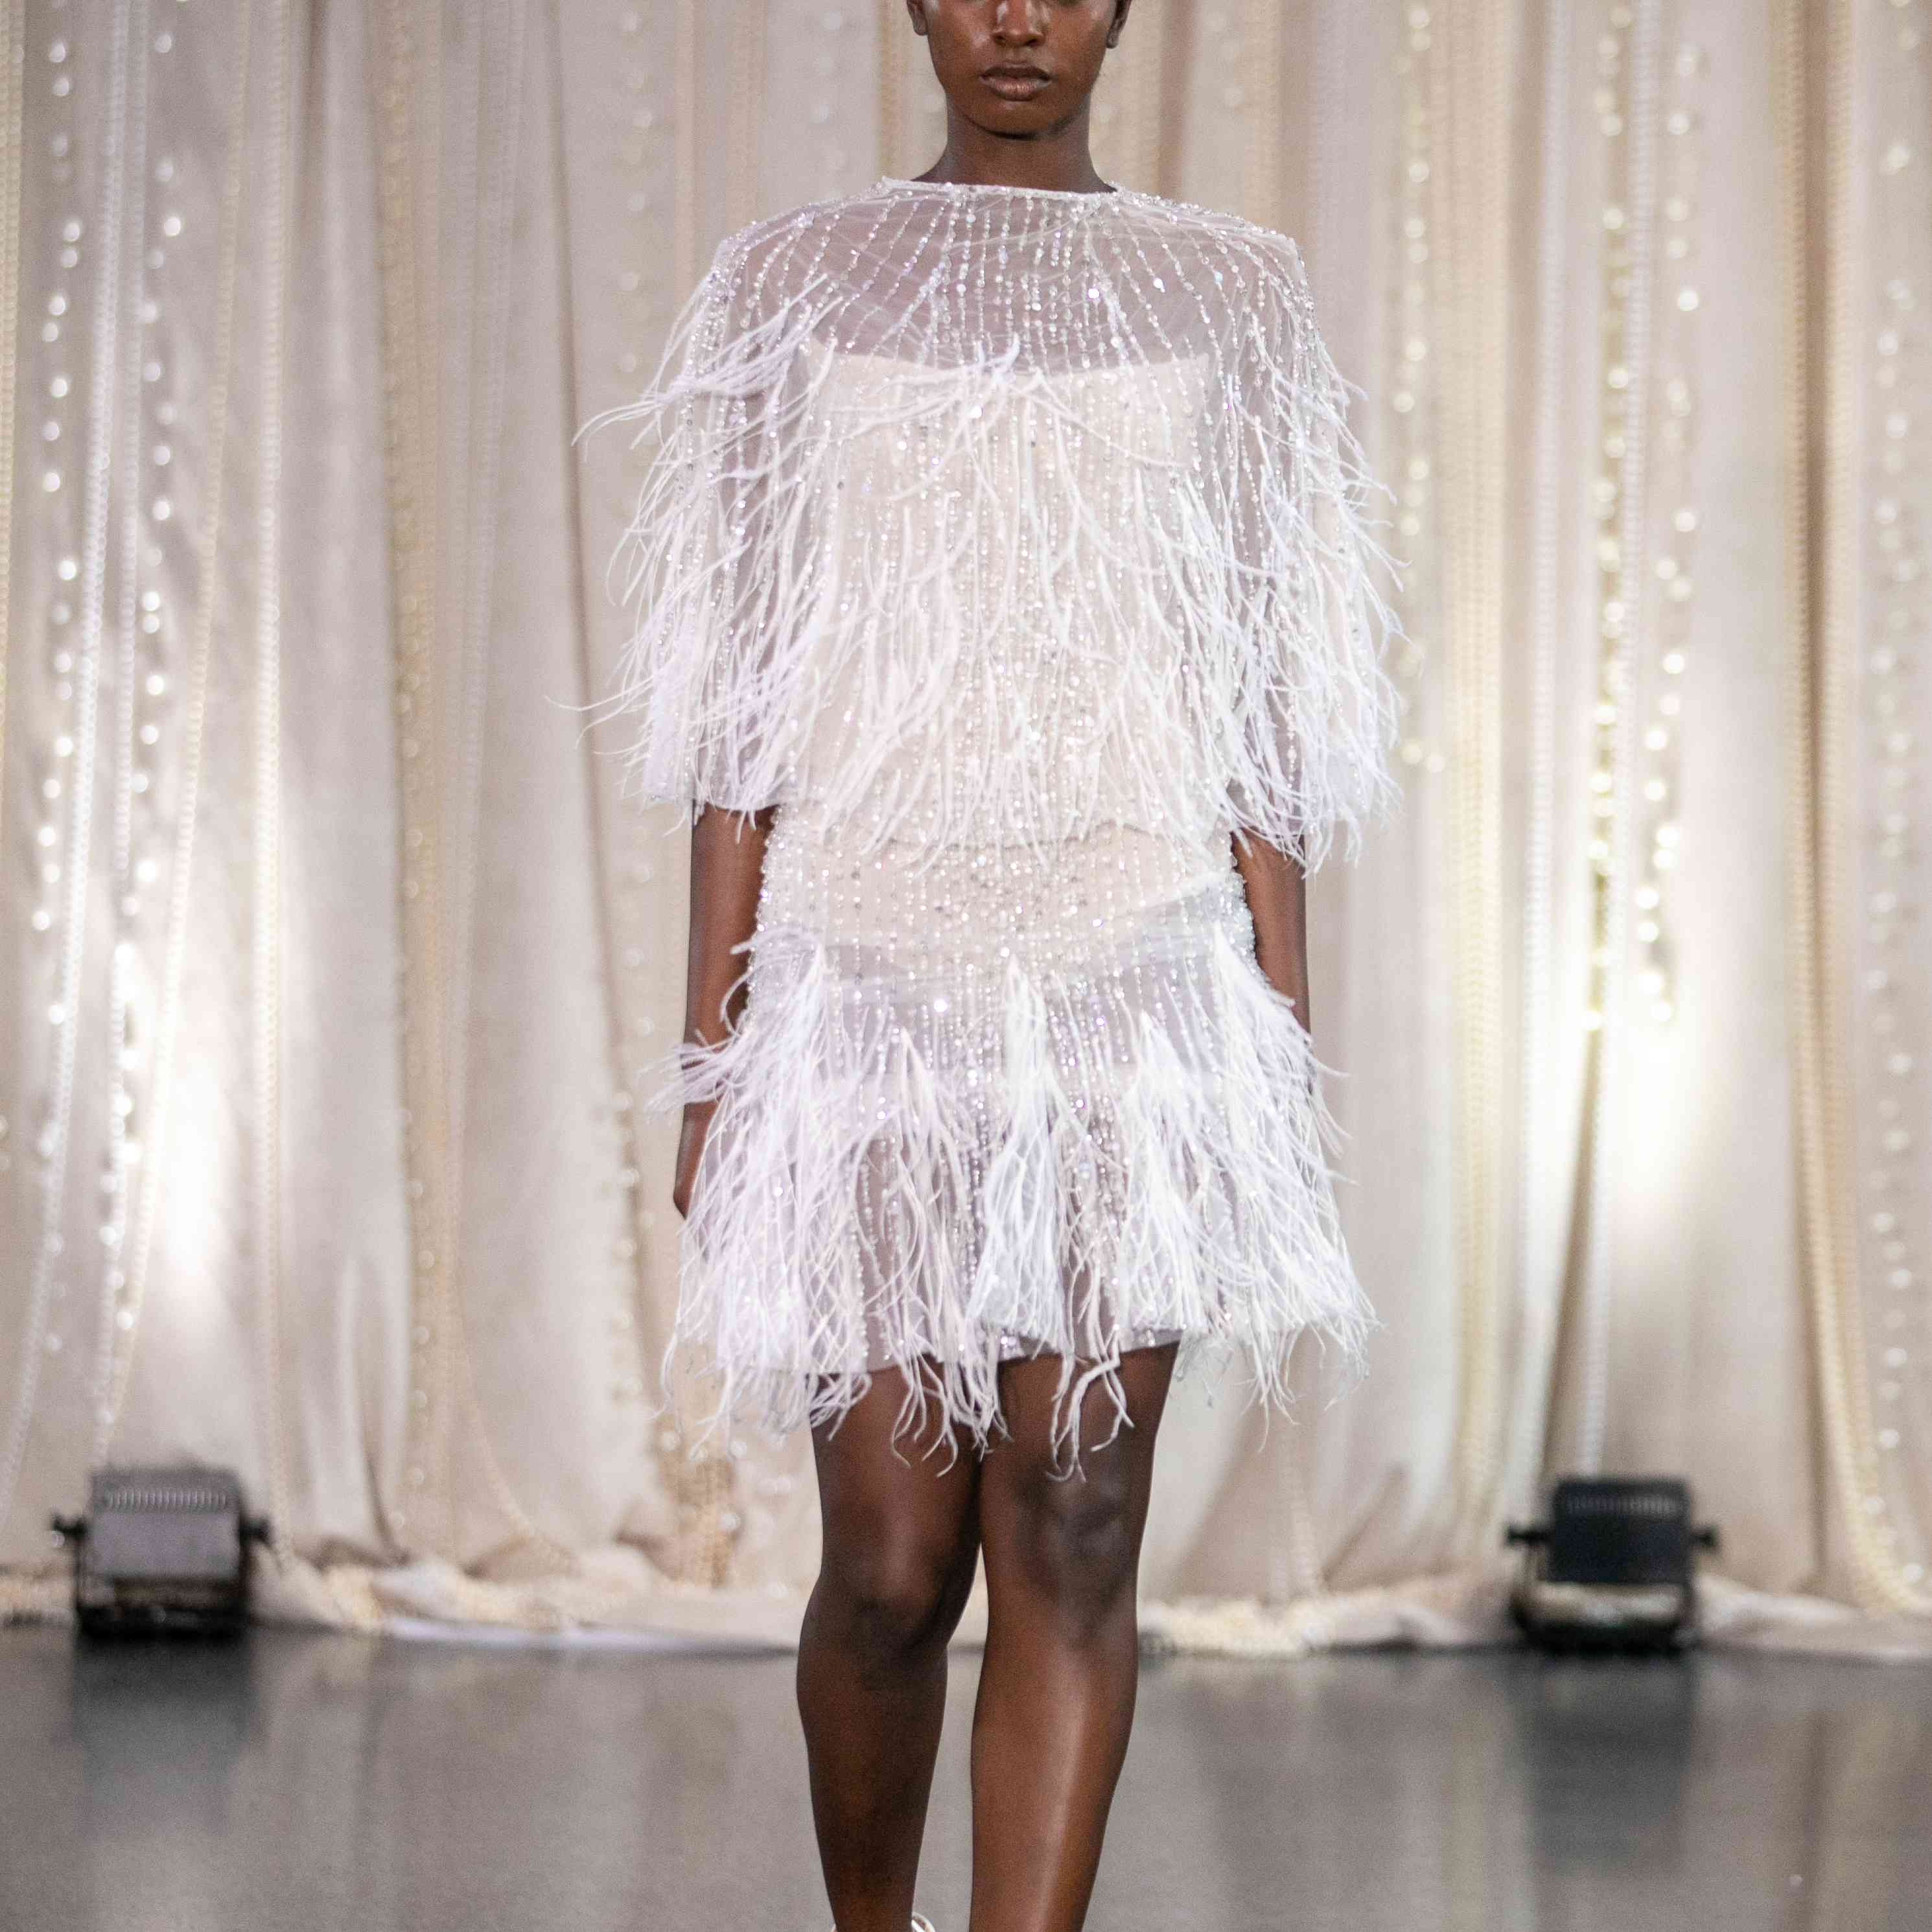 Model in mini wedding dress with feathers